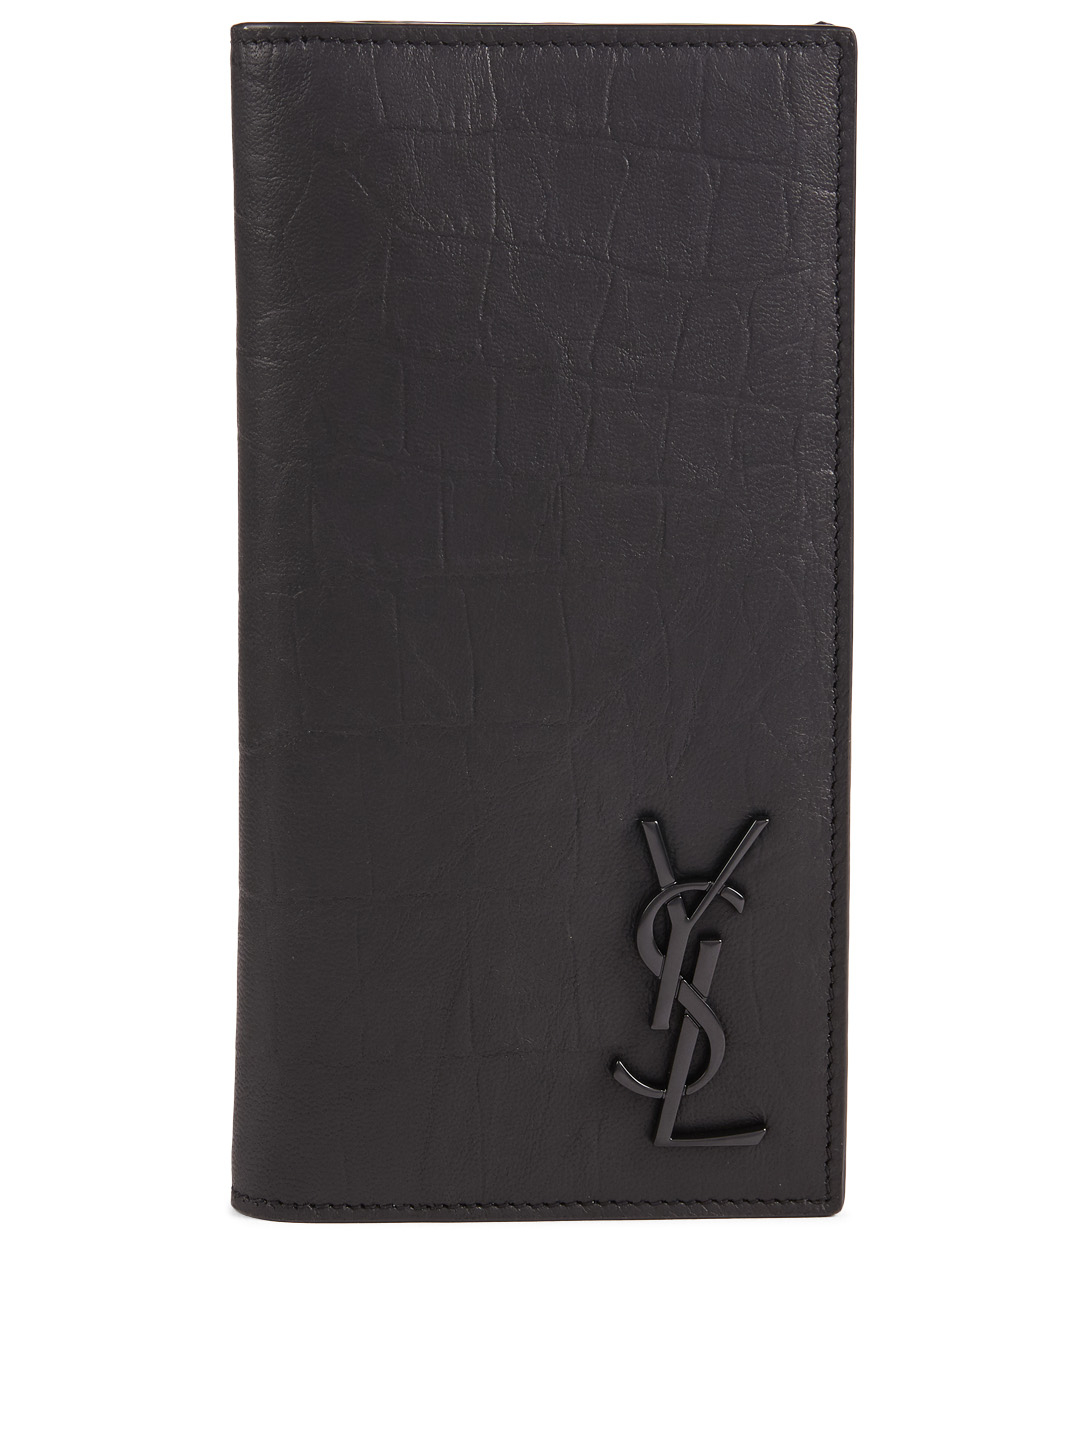 e58048cfdb4 SAINT LAURENT Monogram Croc-Embossed Leather Wallet Men's Black ...